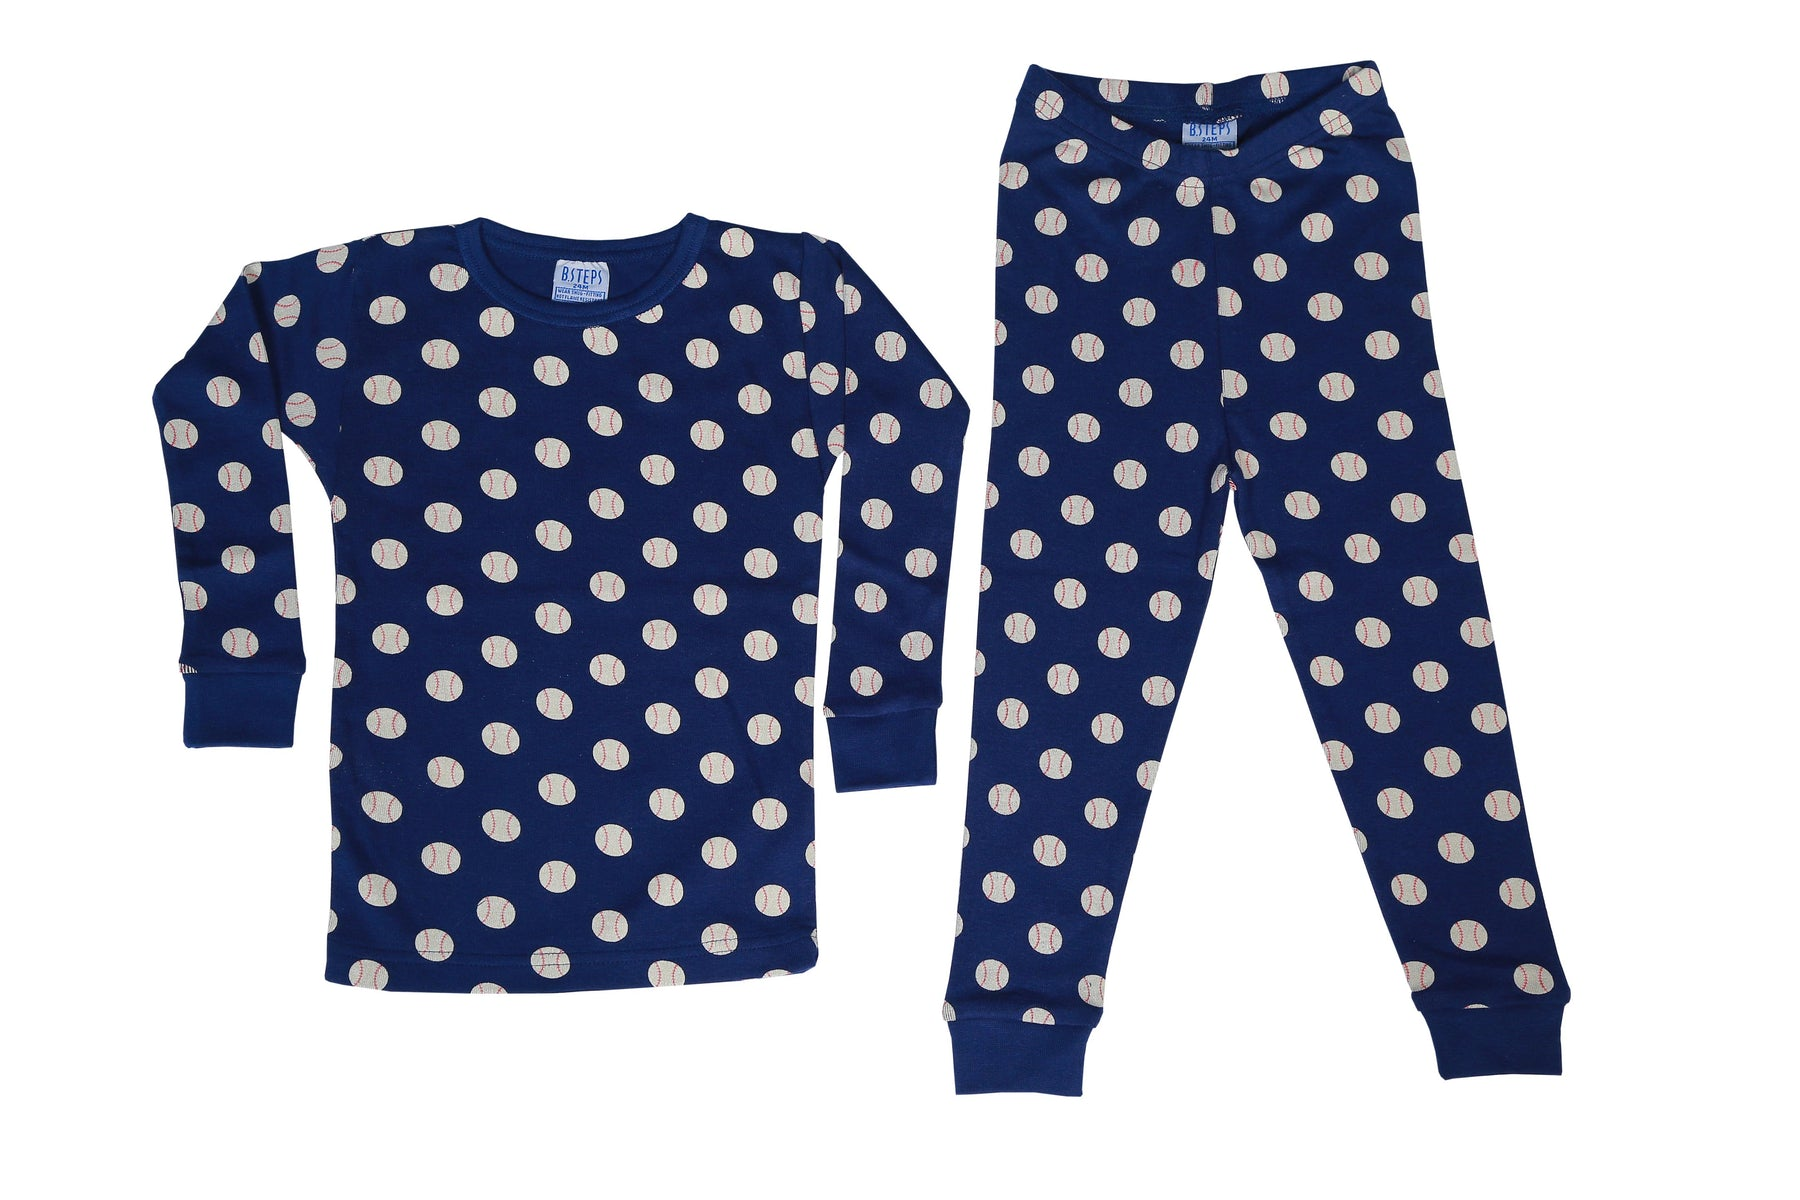 Pajamas - Baseballs on Navy (1510065995851)